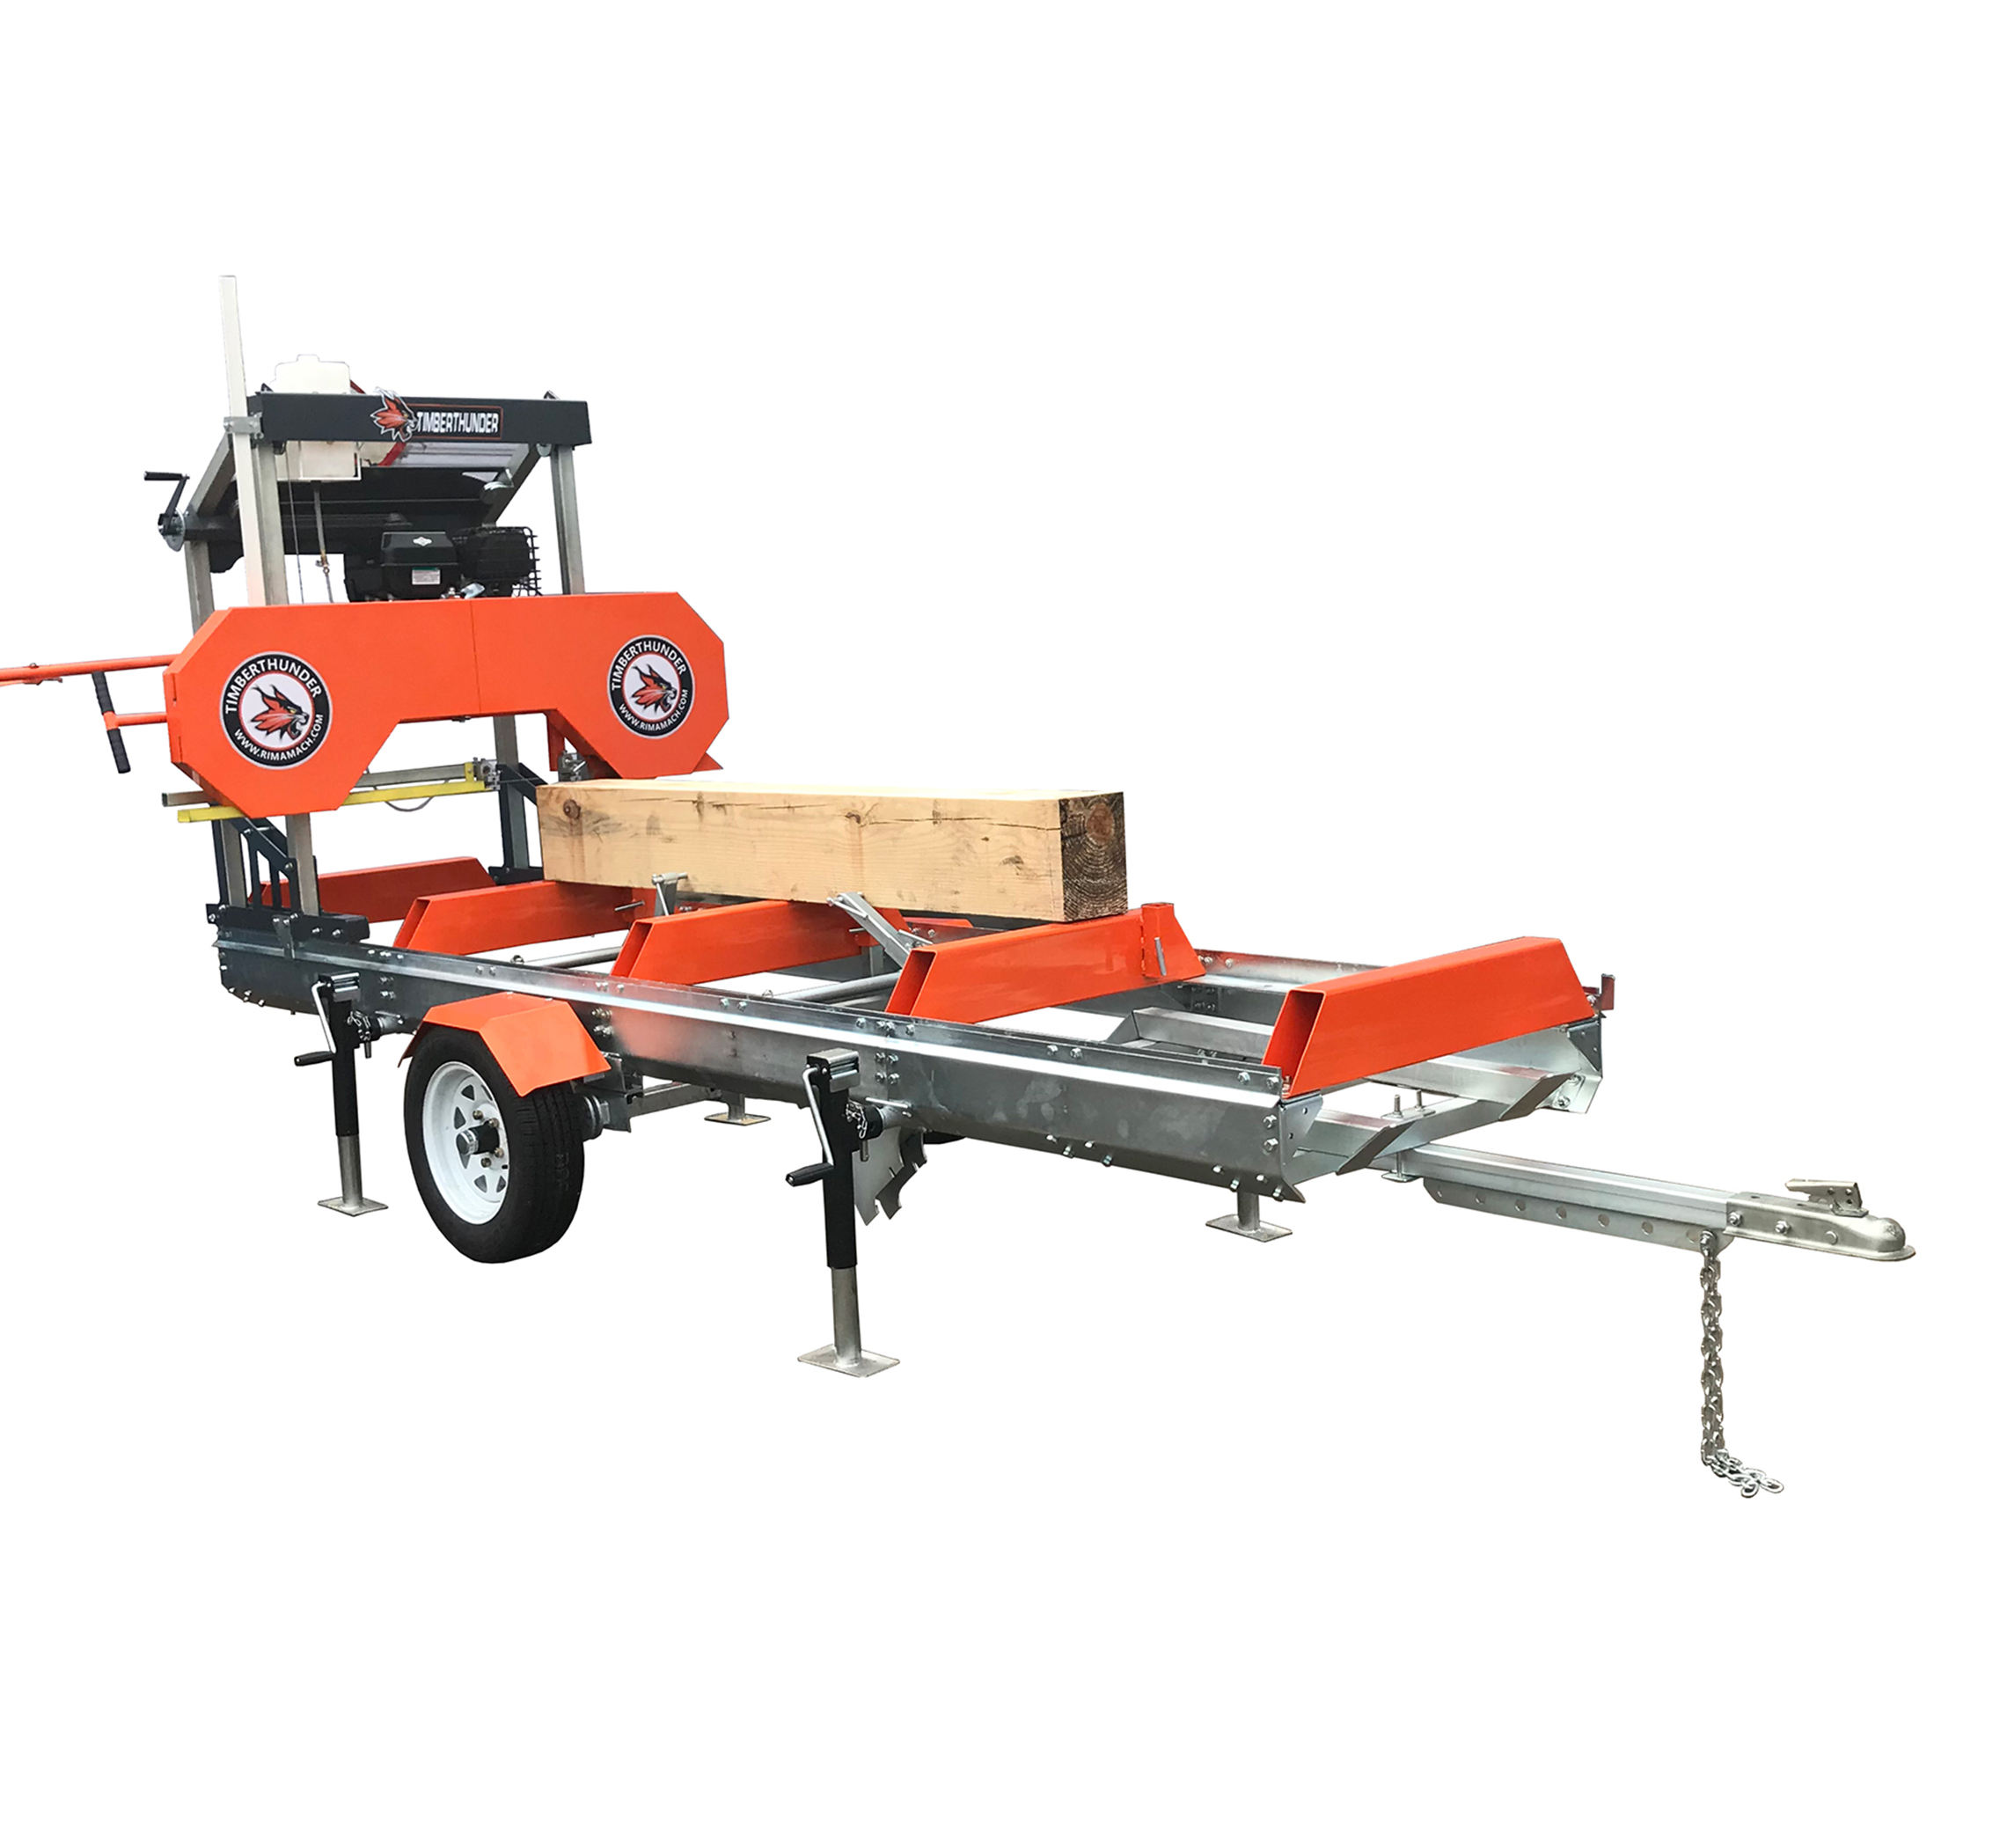 Portable wood sawmill band saw / wood working band saw mills / log cutting machine